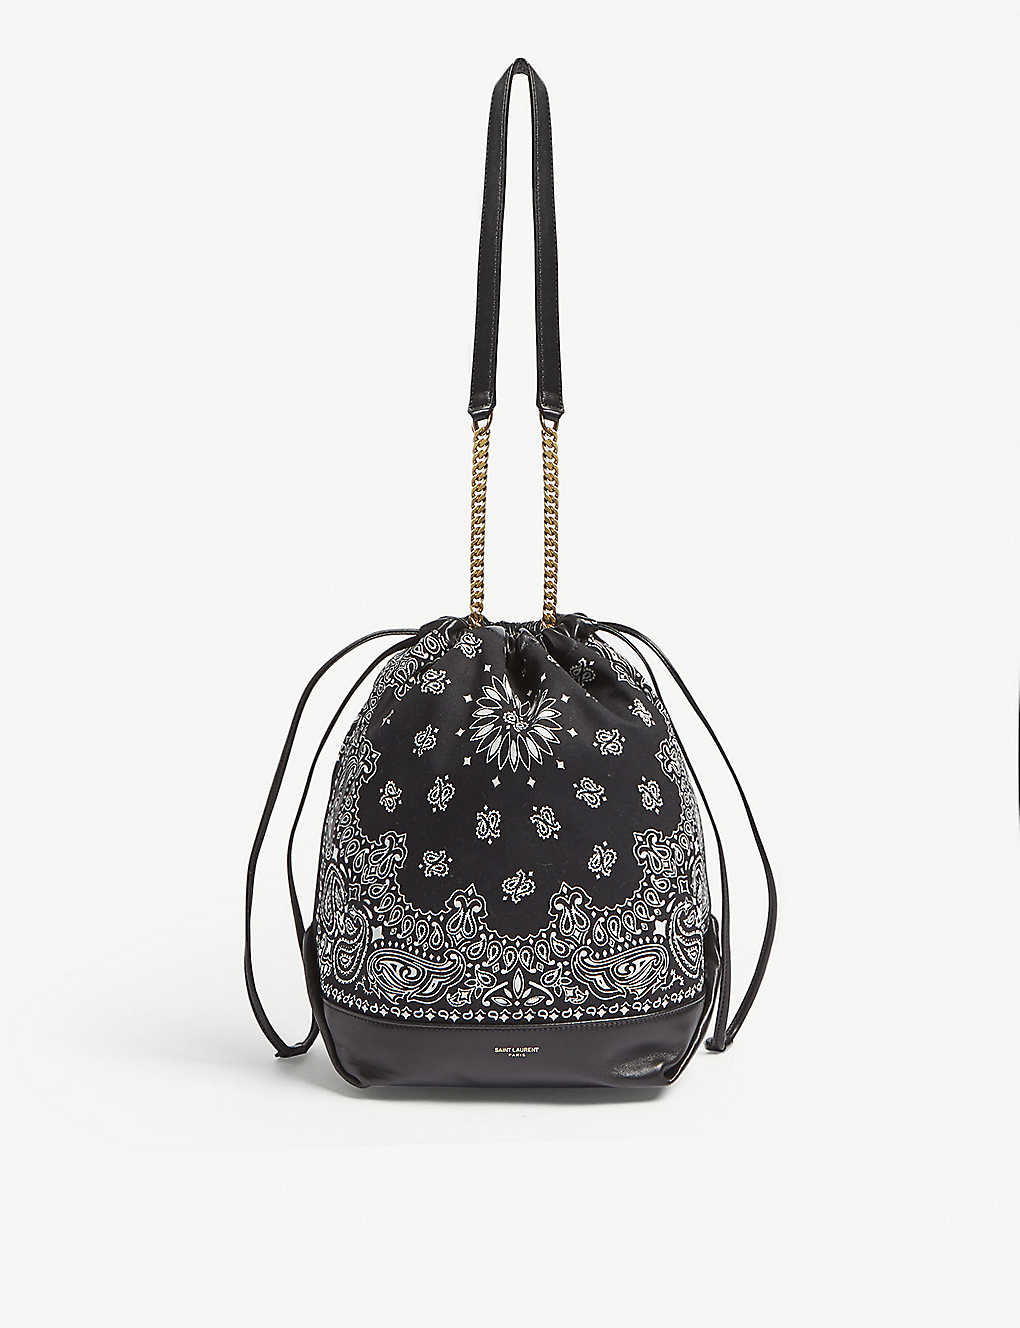 SAINT LAURENT - Teddy bandana print bucket bag  30473d122e6f8